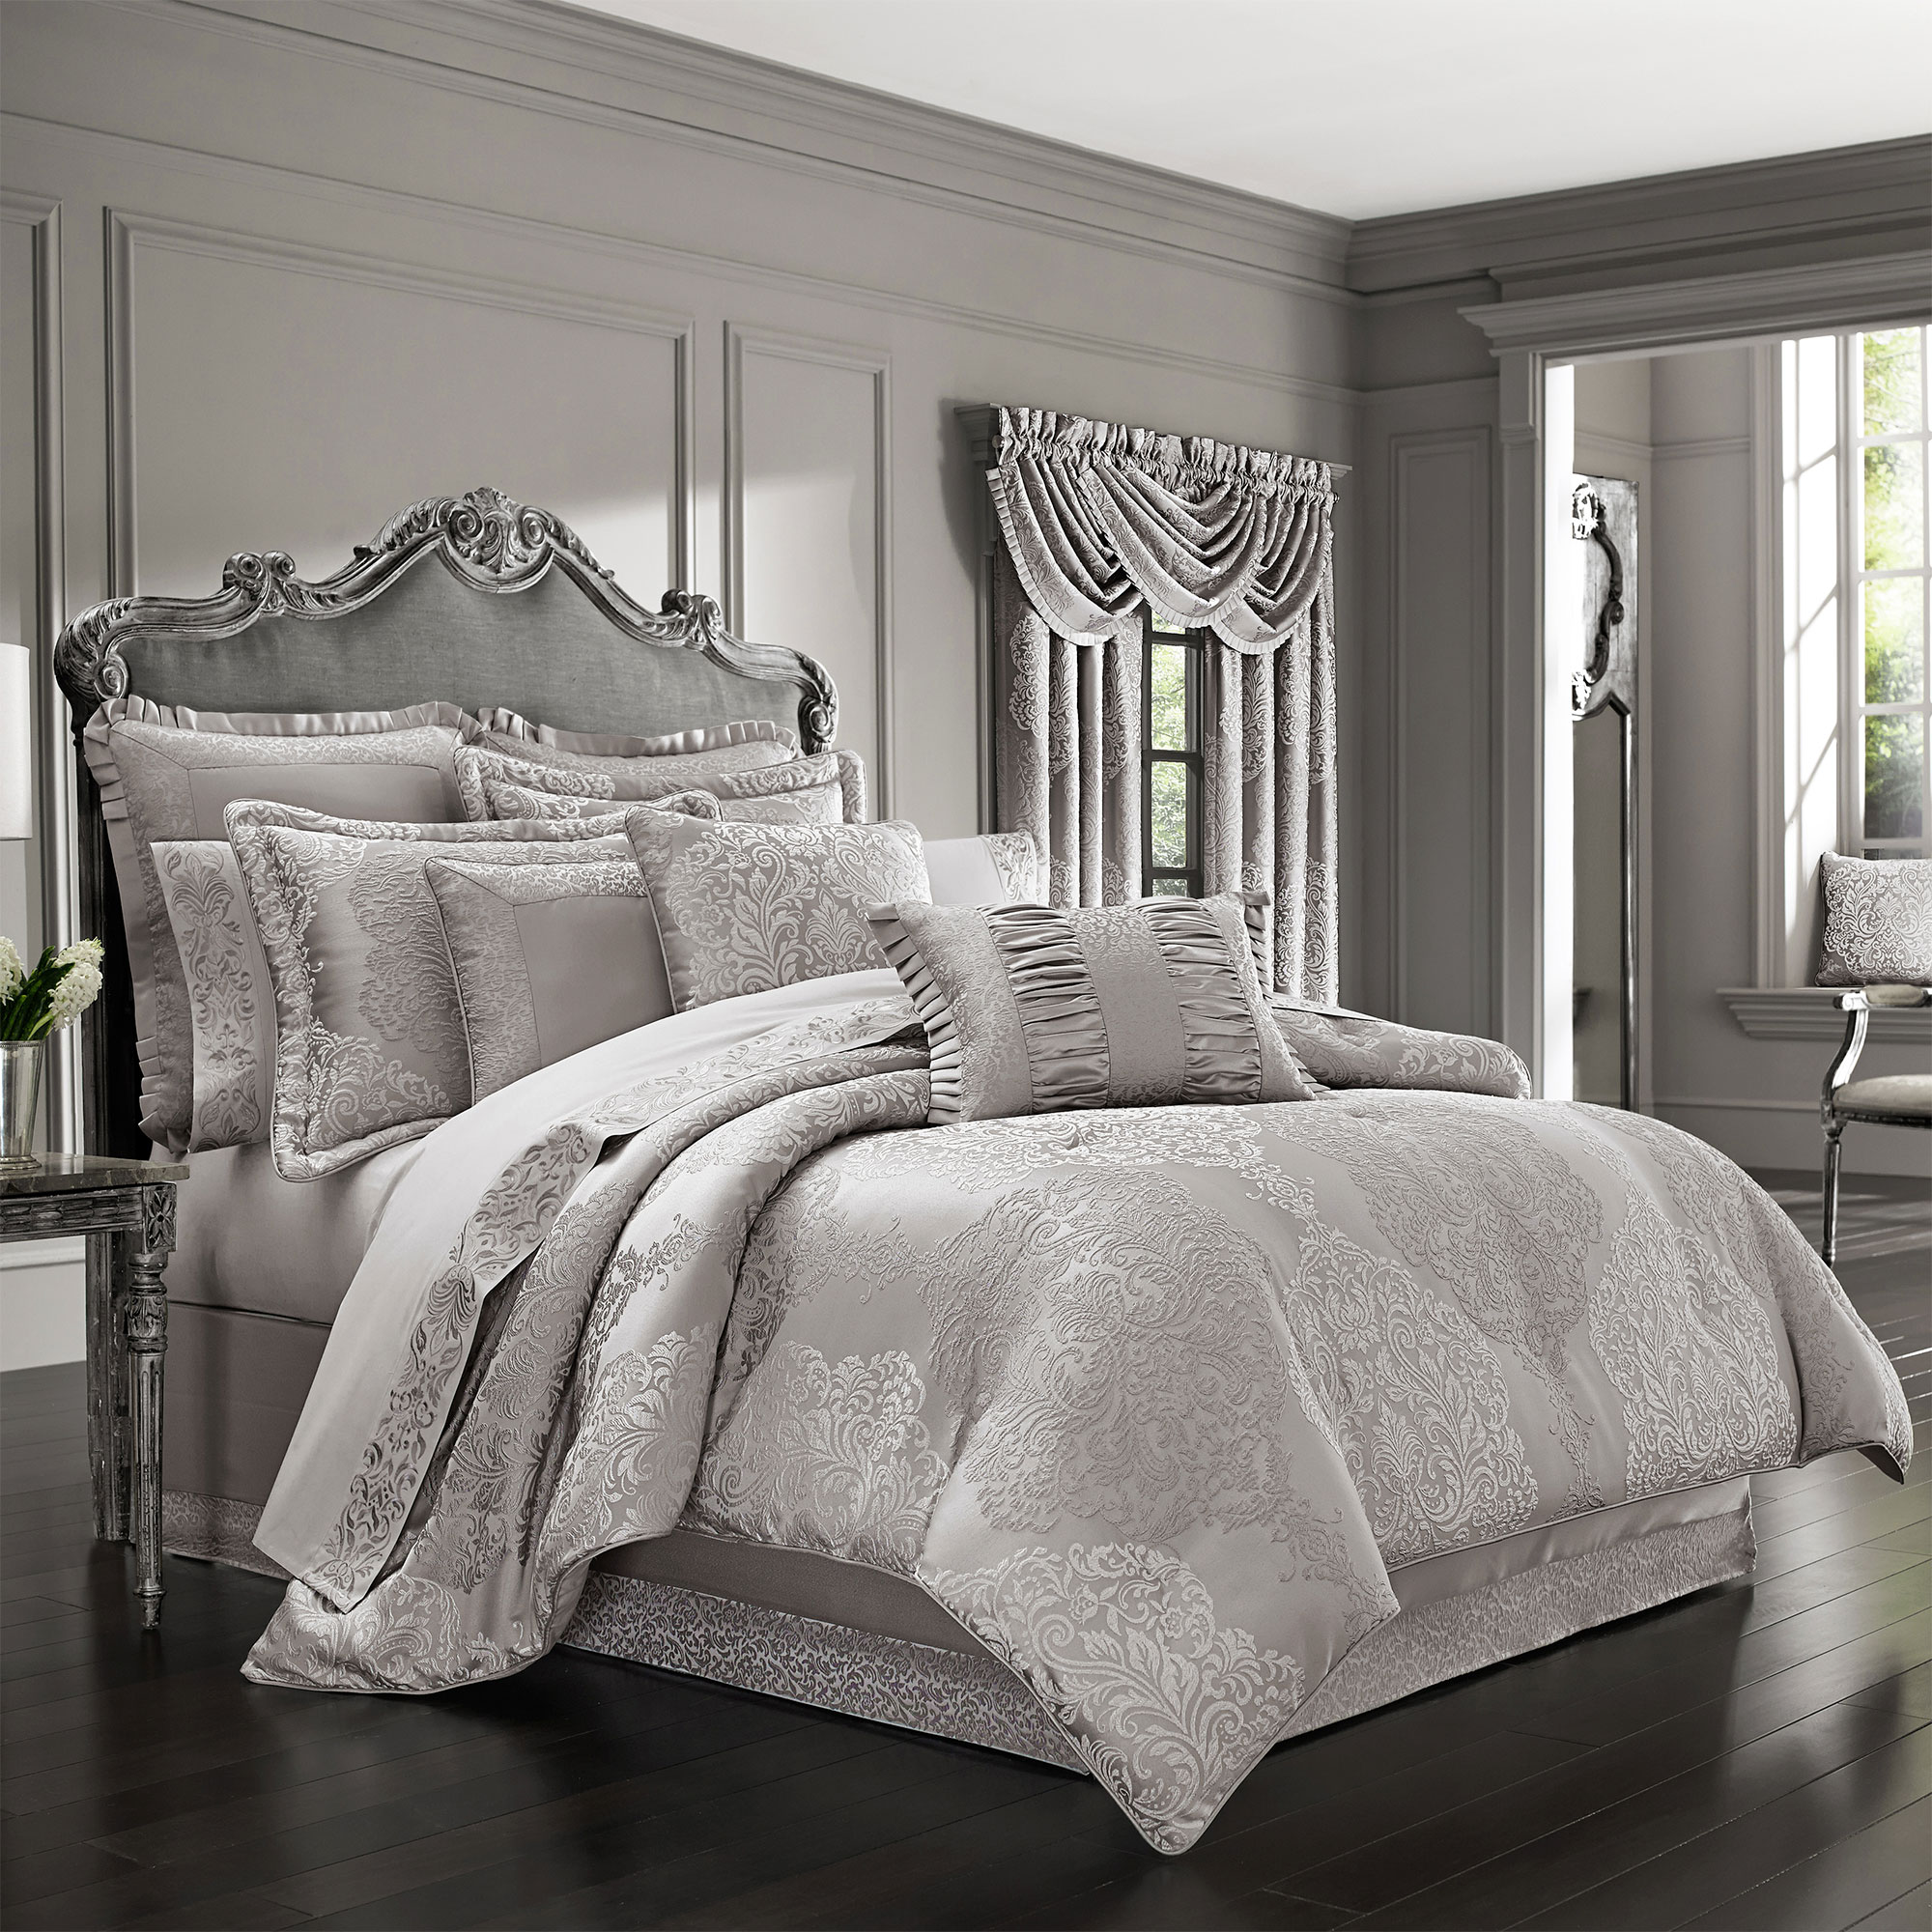 sutton save in queen piece rose p set of baltimore comforter silver